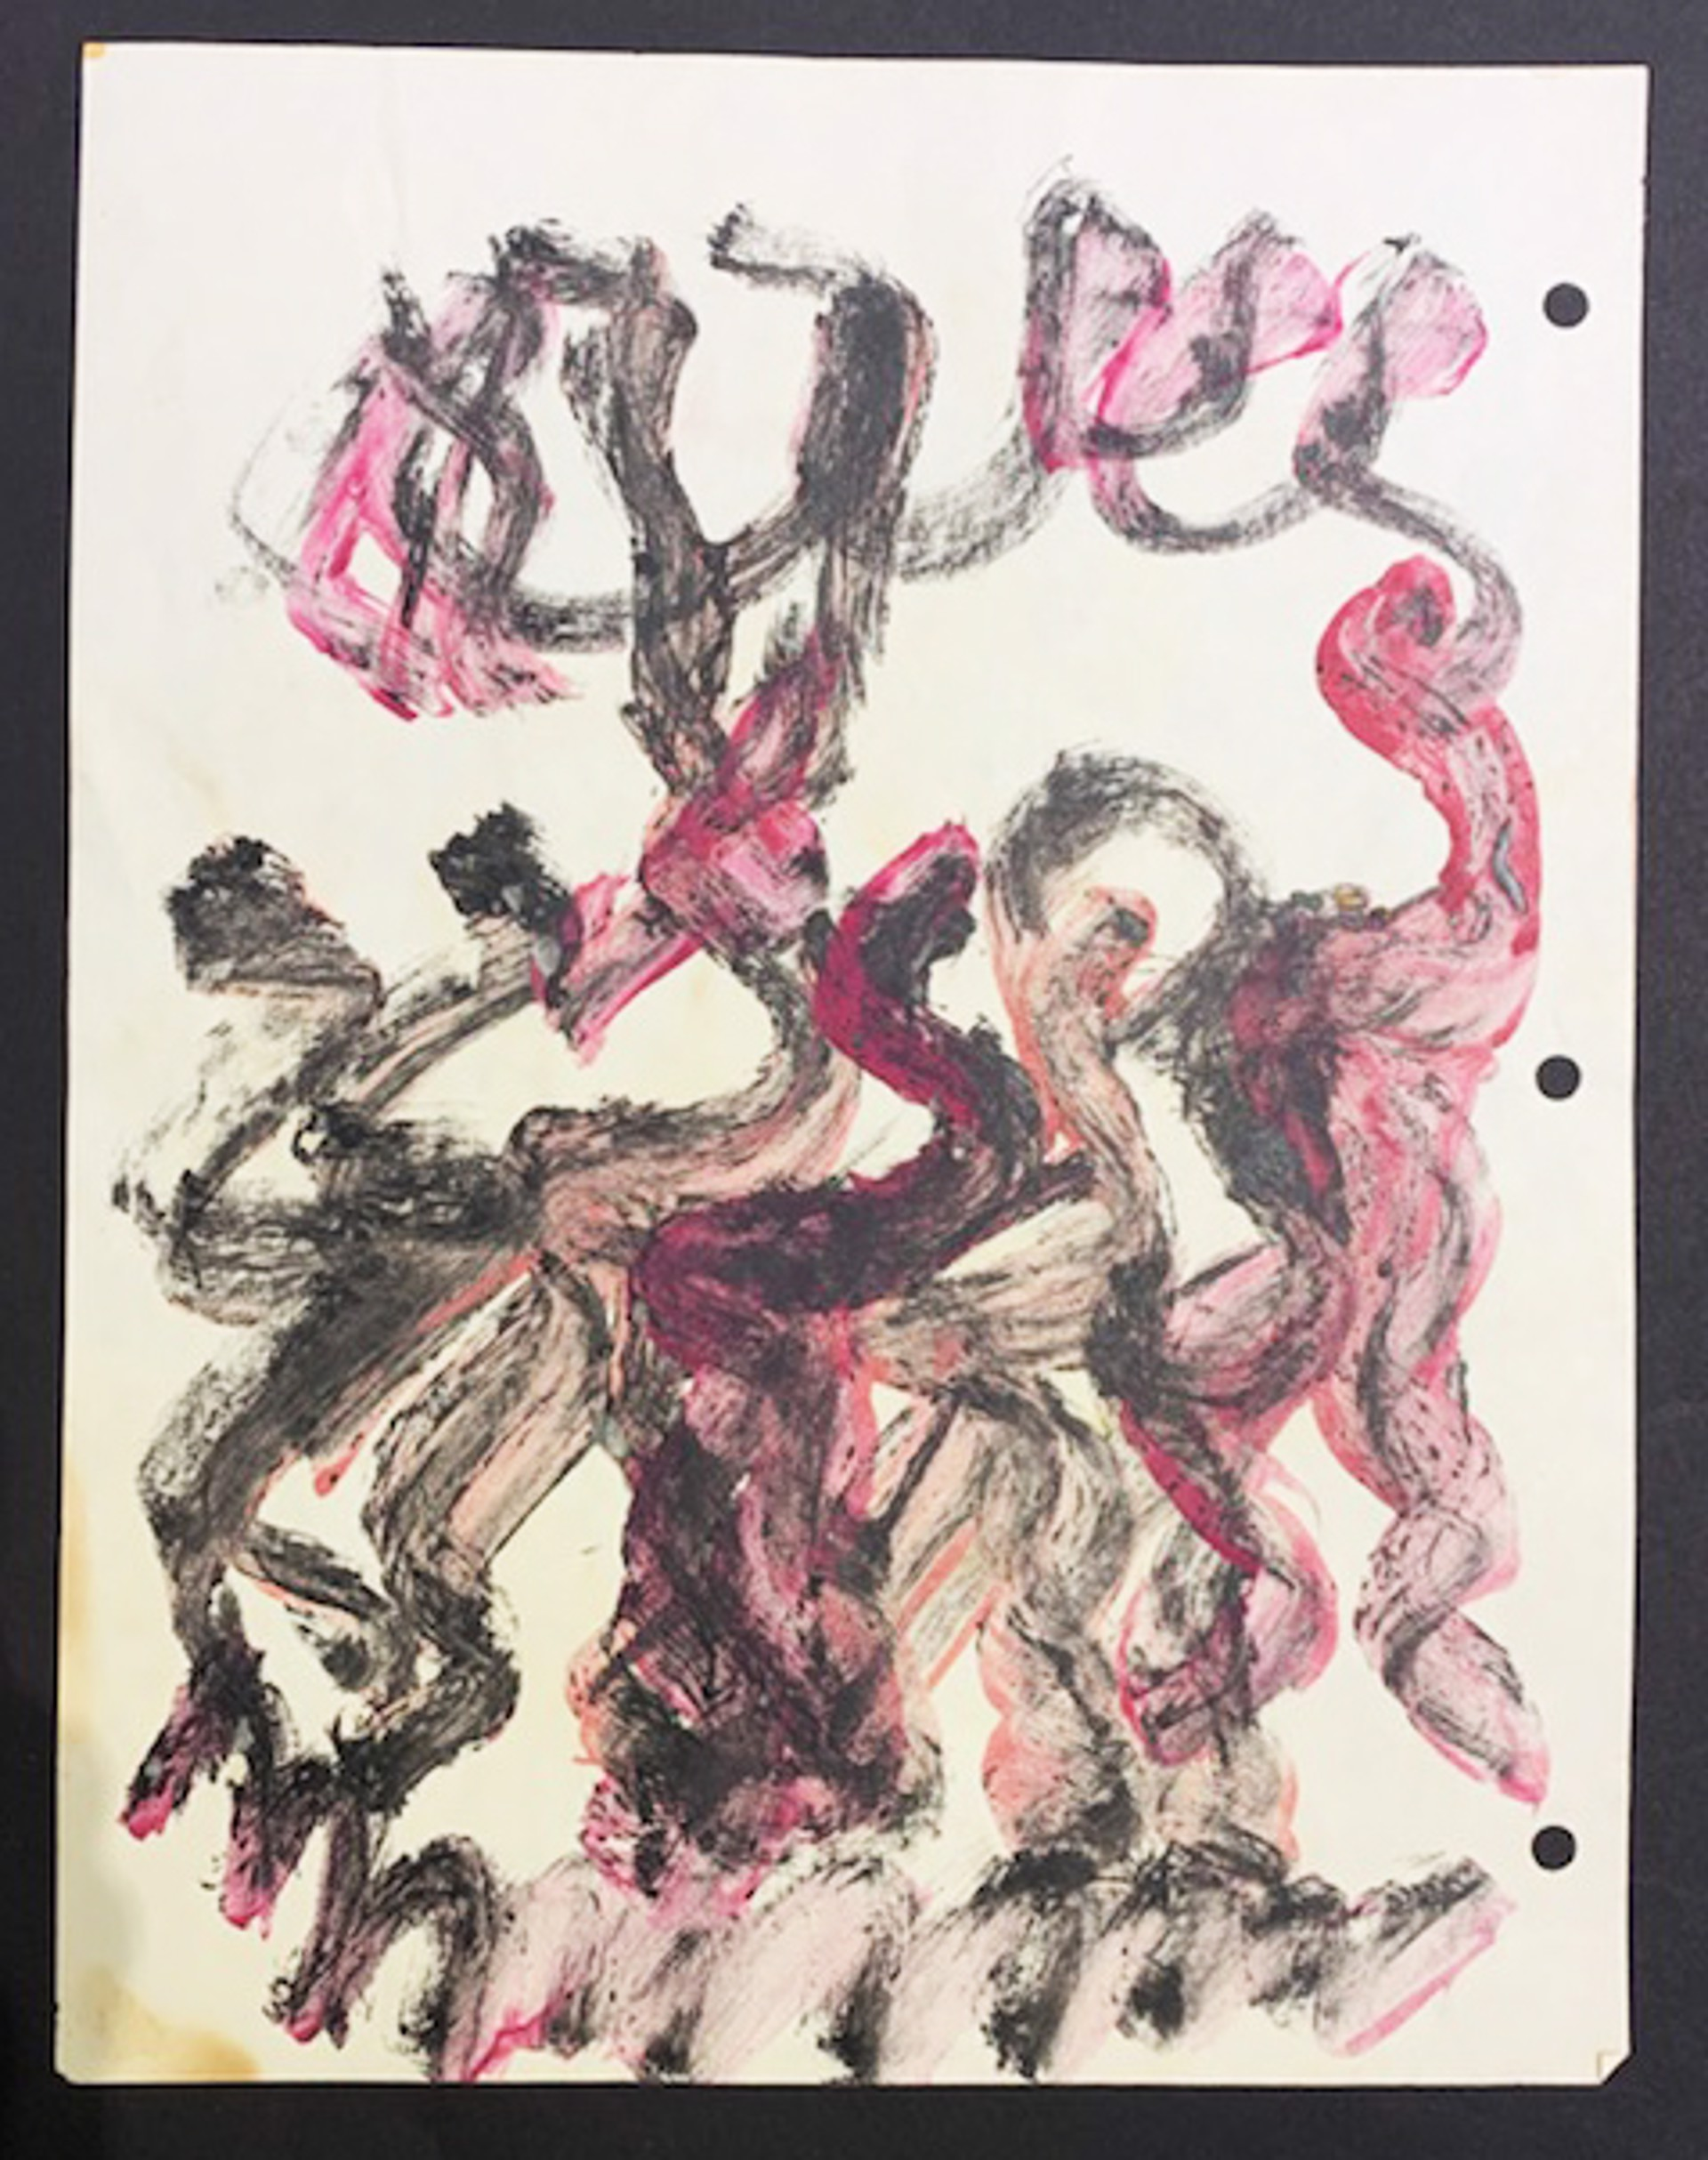 Drawing from the 1990's #26 by Purvis Young (1943 - 2010)